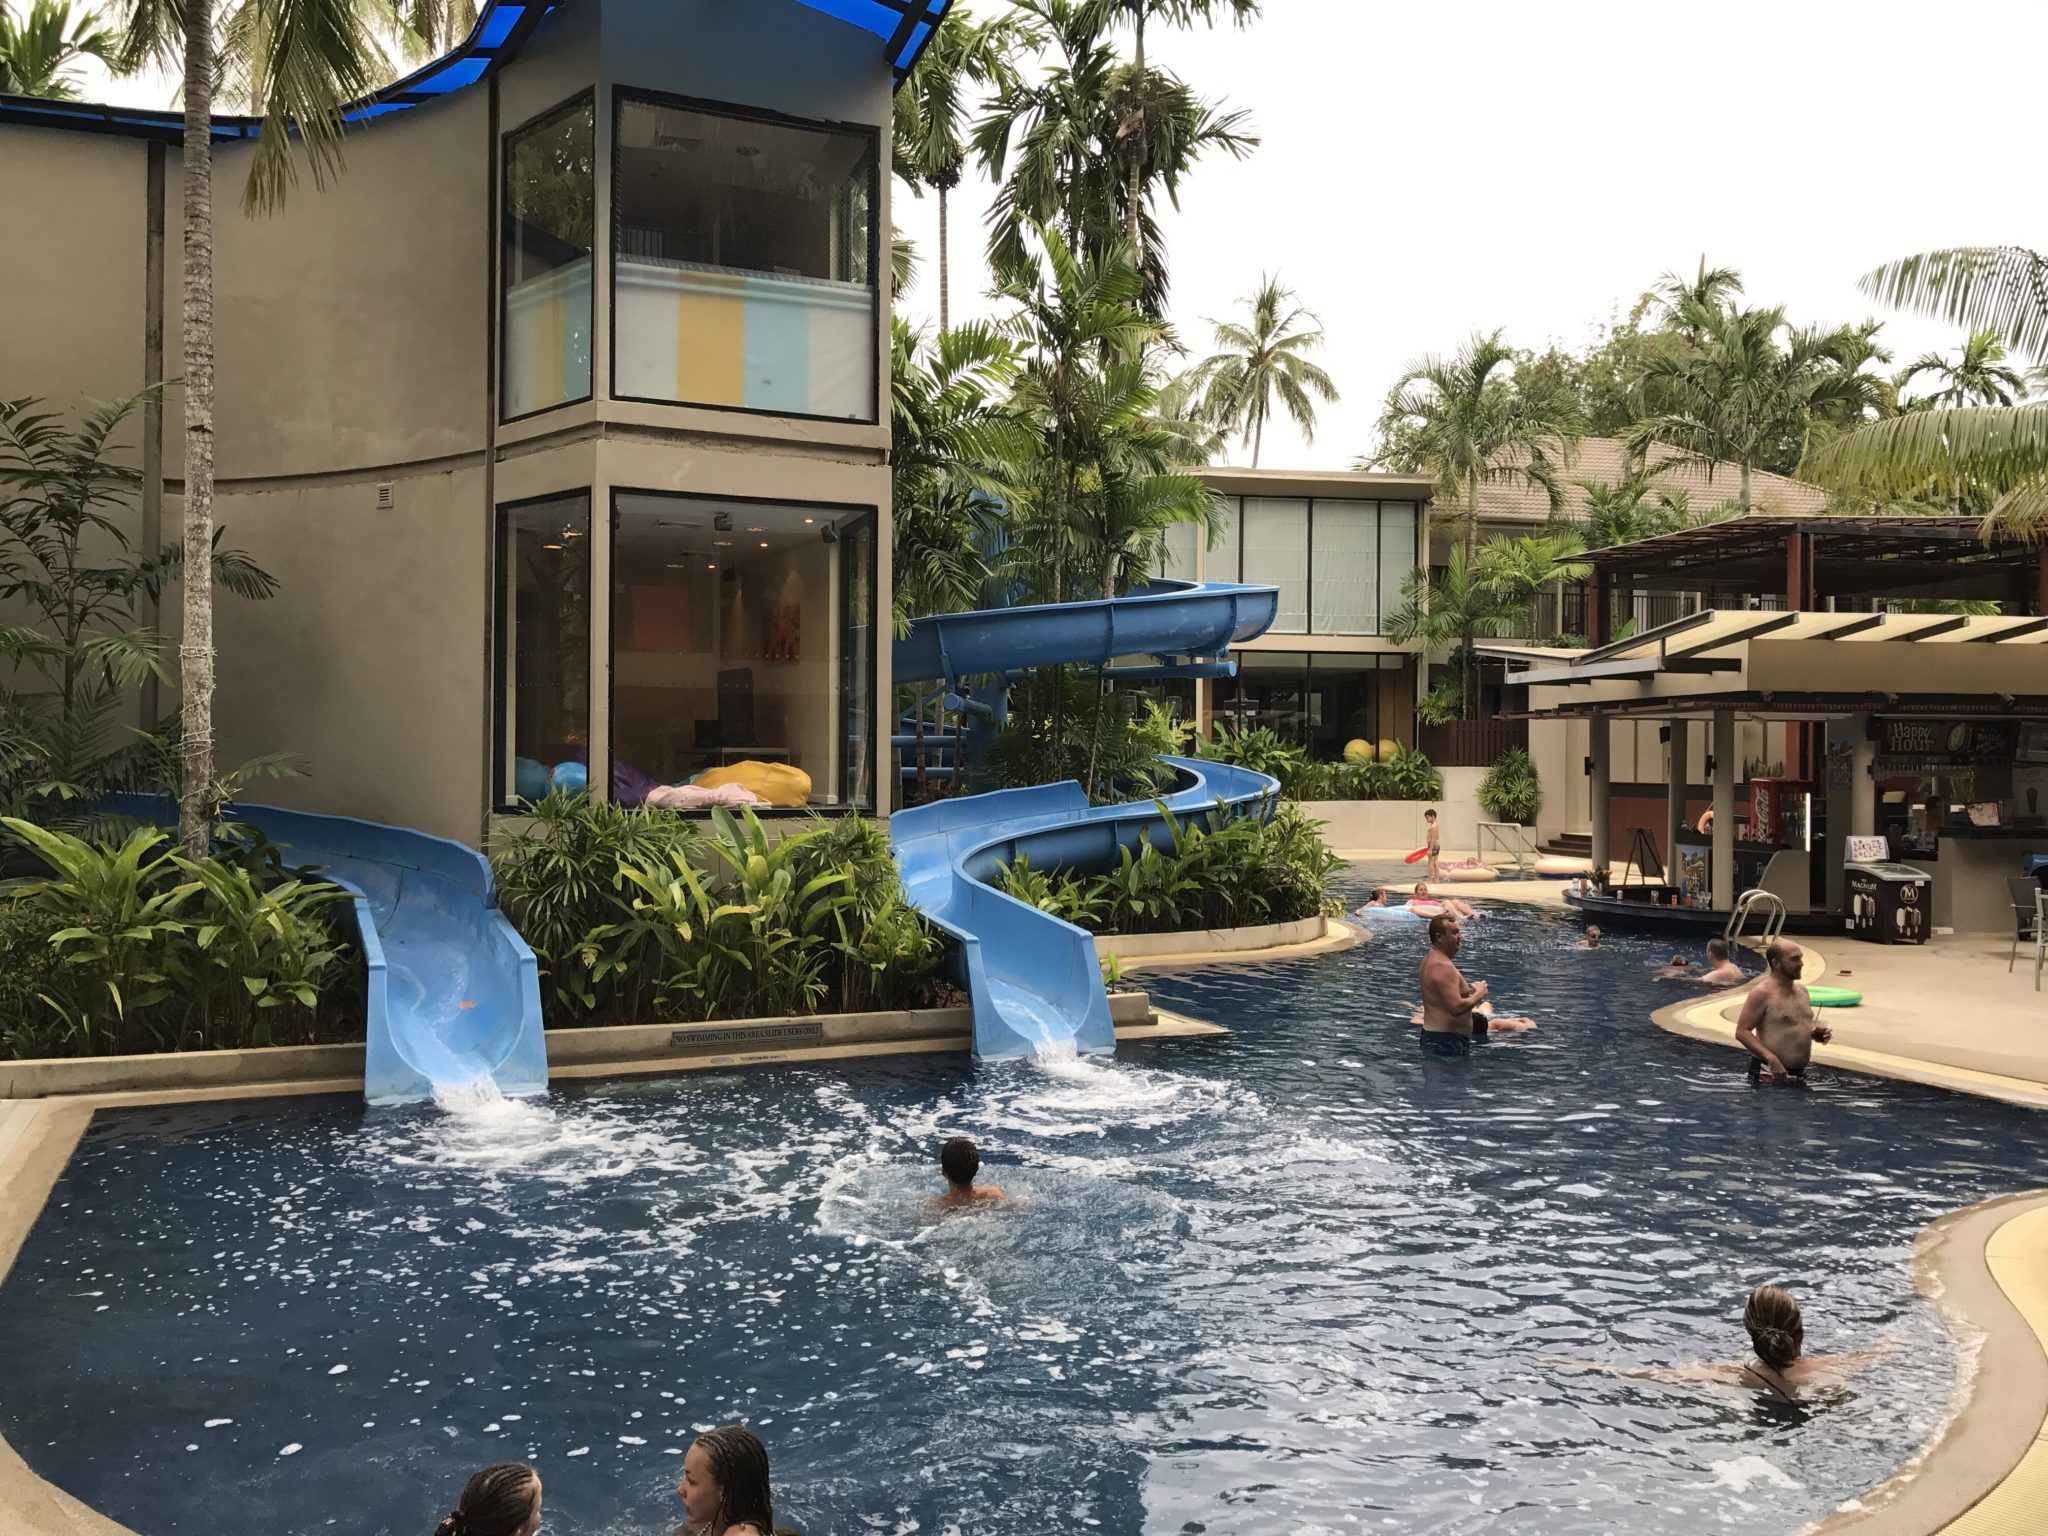 Novotel Phuket Surin beach is a family friendly Thailand hotel with kid activities, lots of food options, a spa, and Surin beach access.